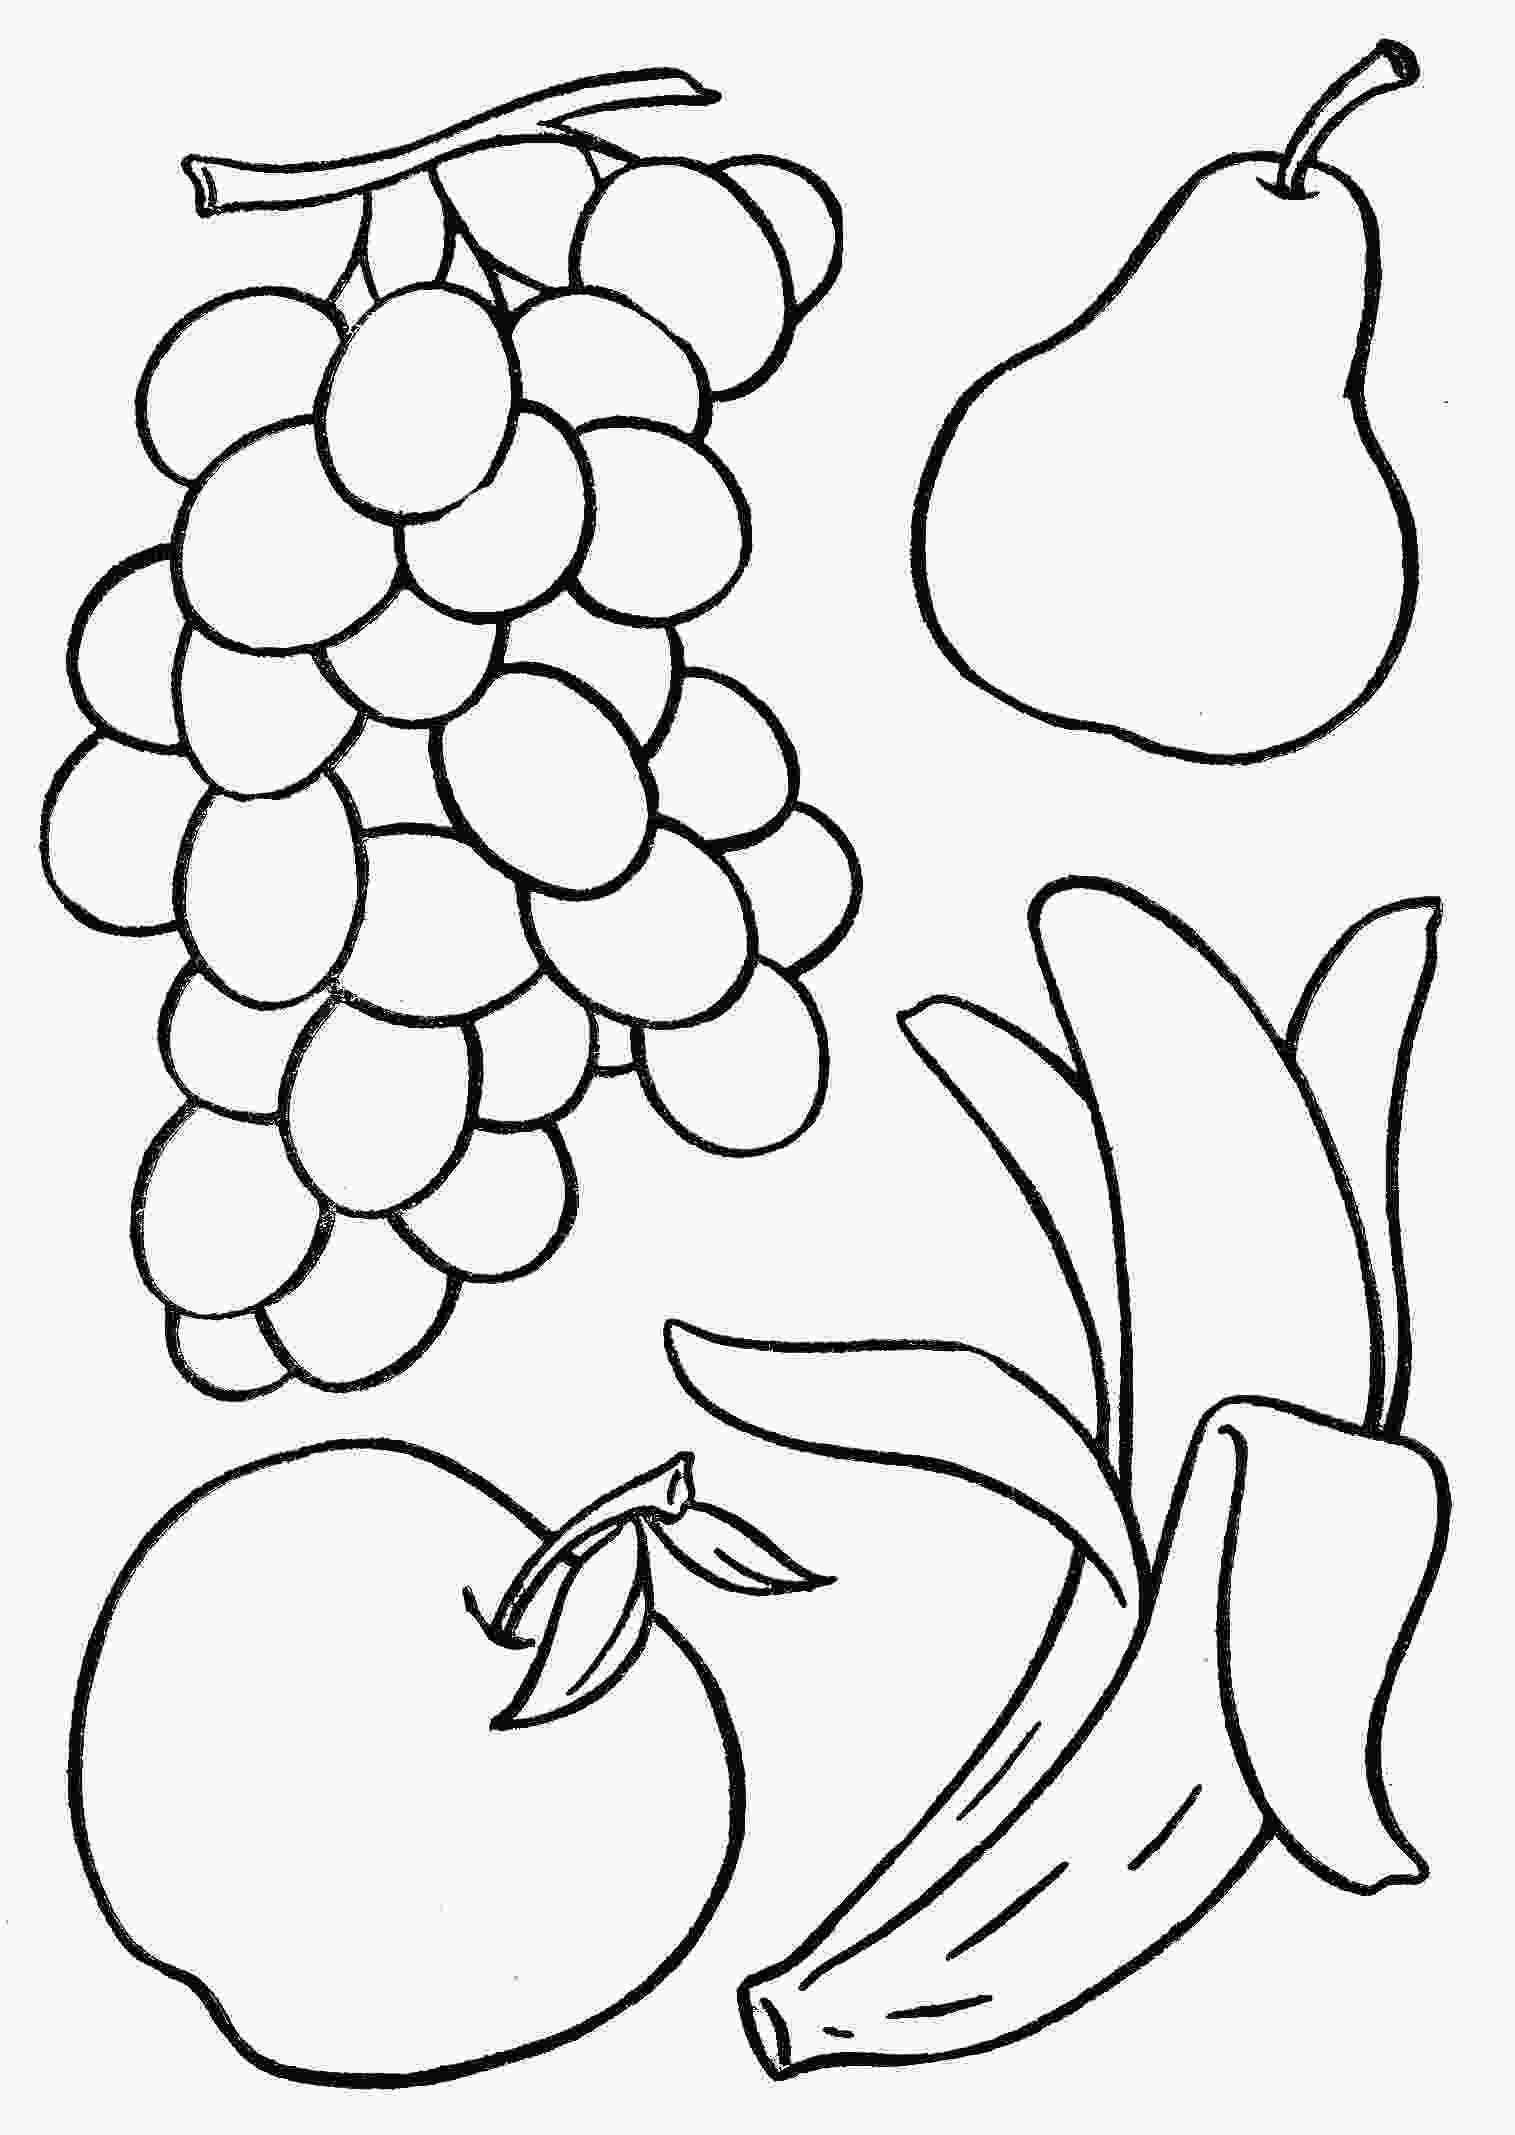 fruit coloring pages basketful to color for toddlers activities artcraft